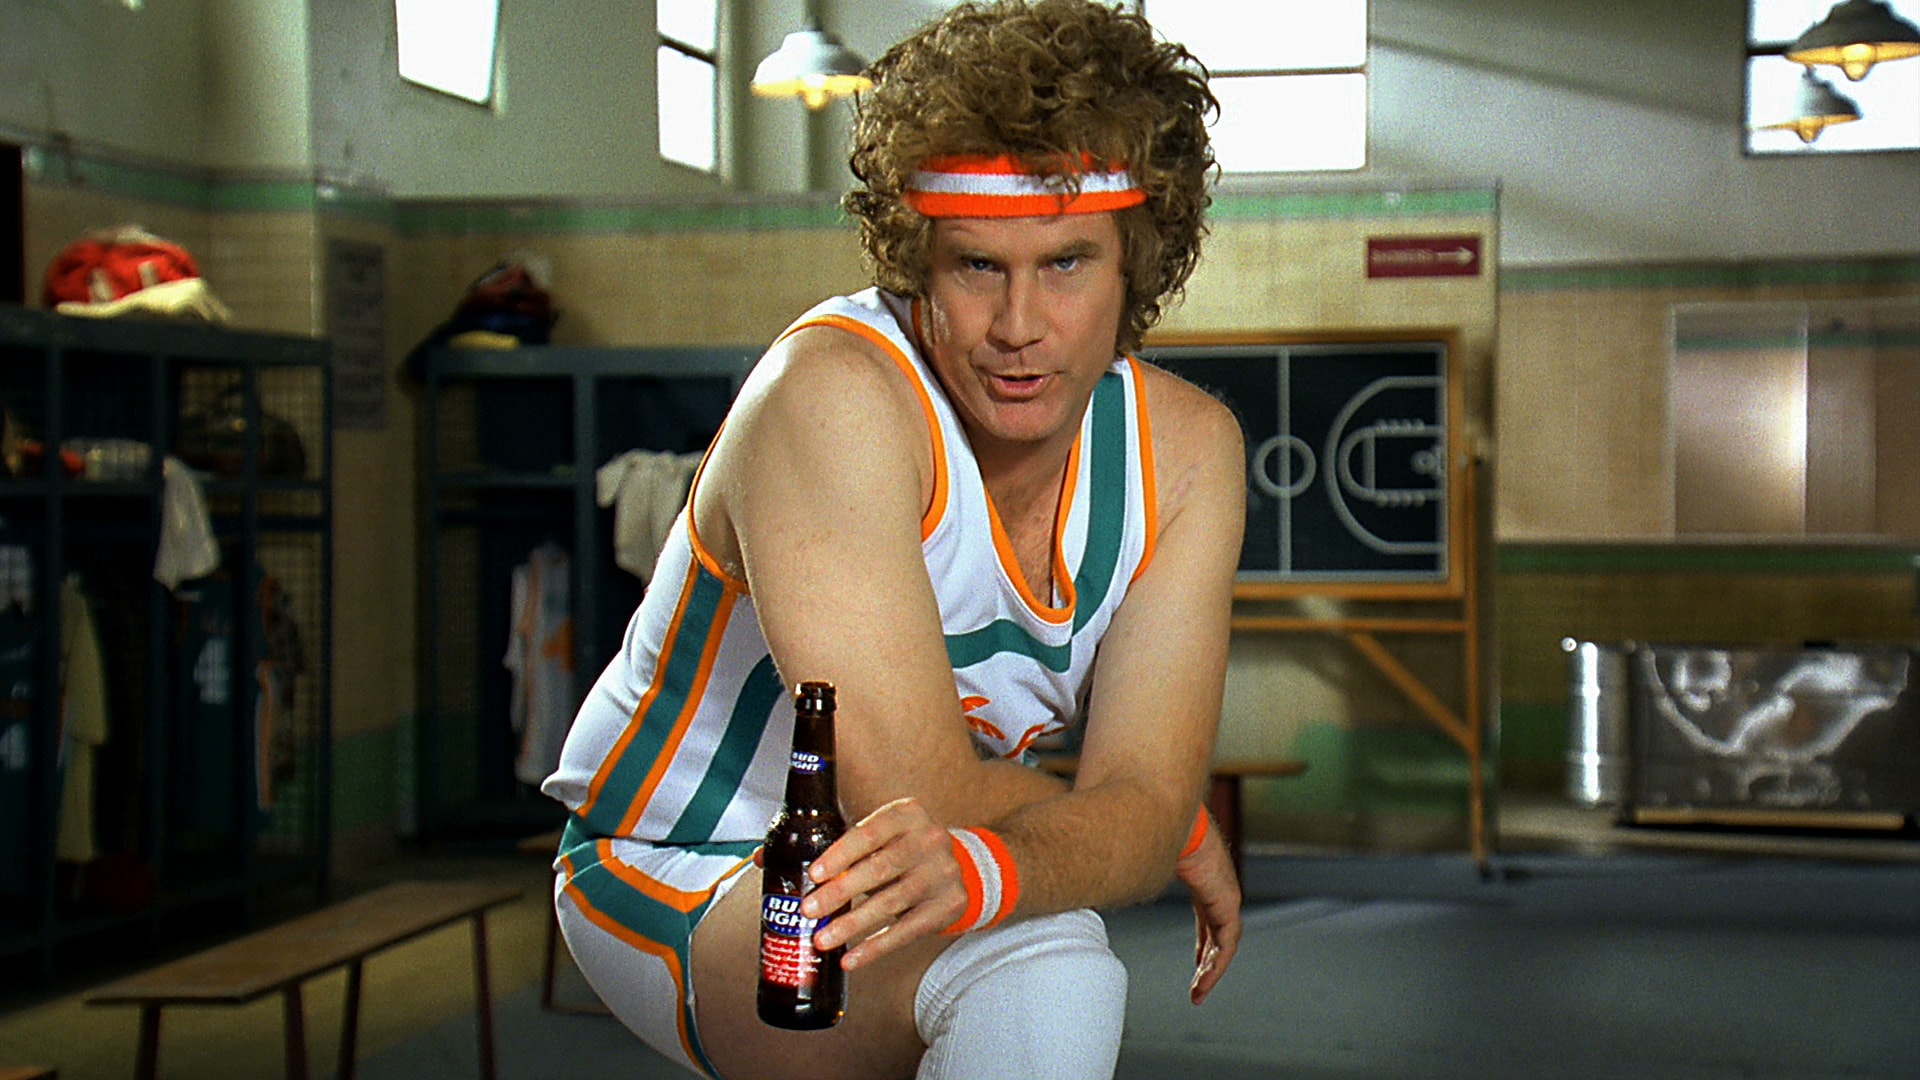 Will Ferrell Full hd wallpapers